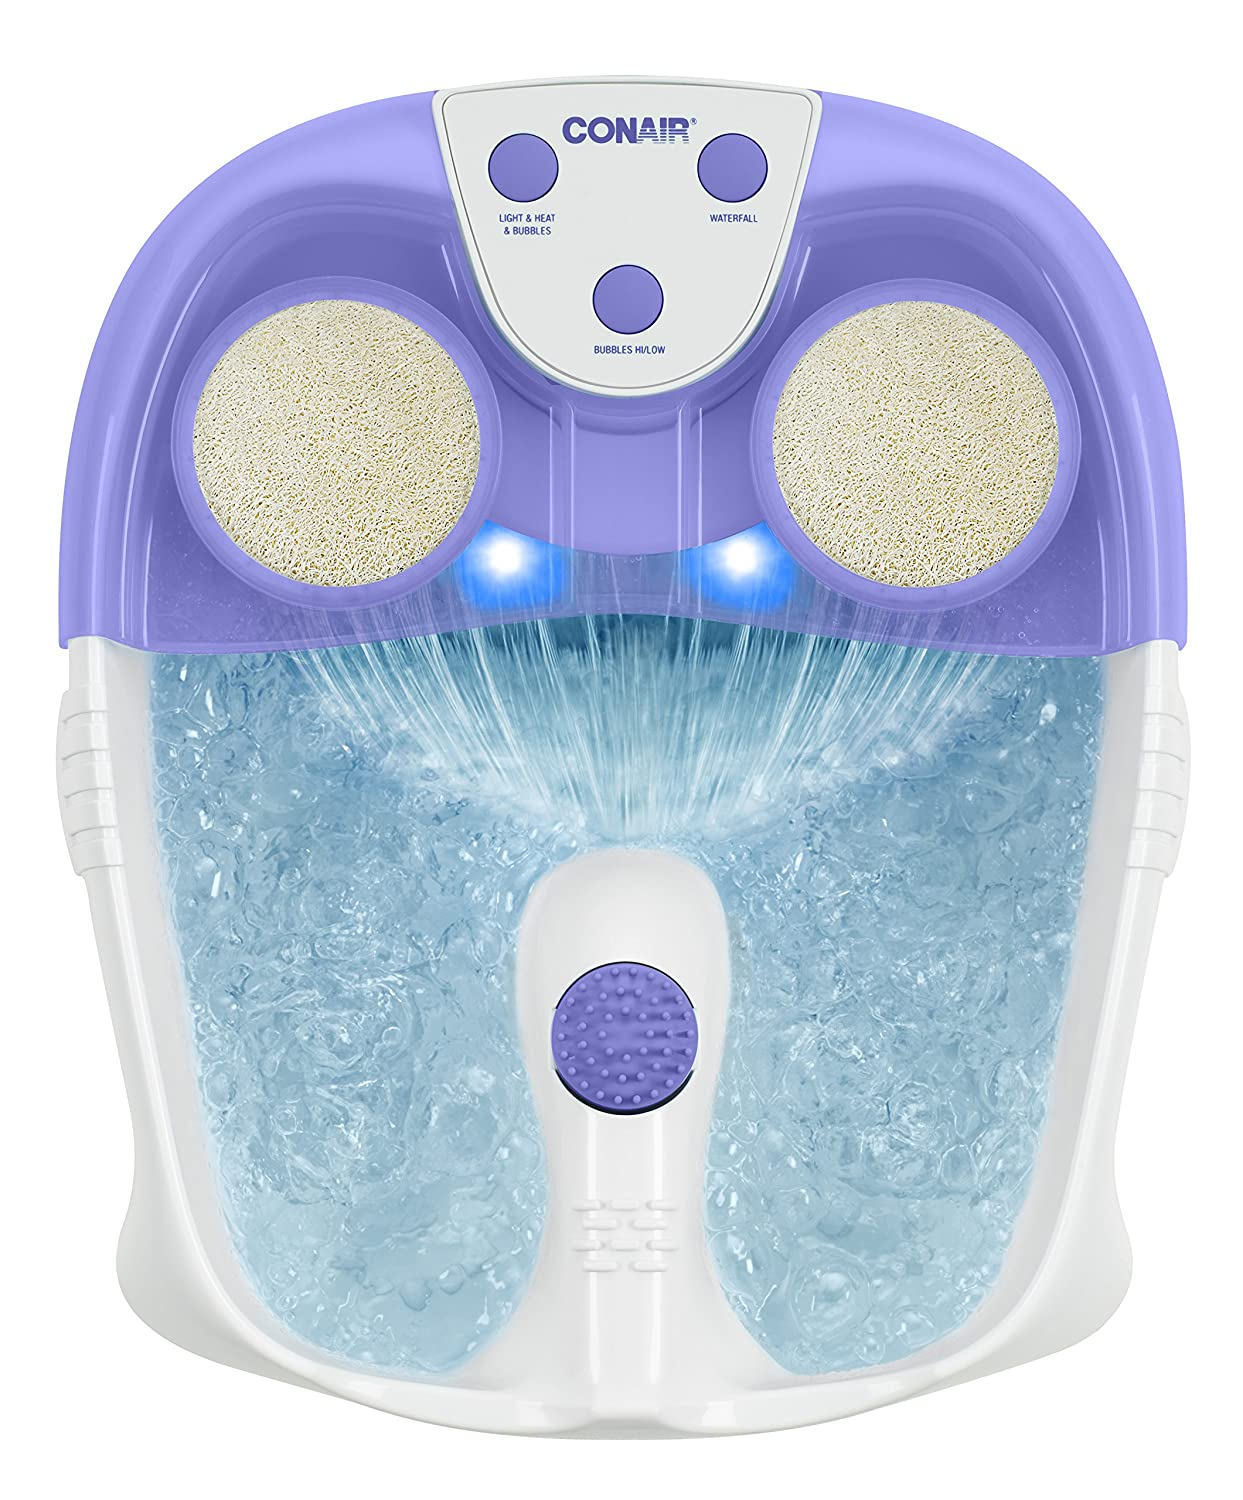 Amazon.com: Conair Foot/Pedicure Spa with Waterfall, Lights and ...